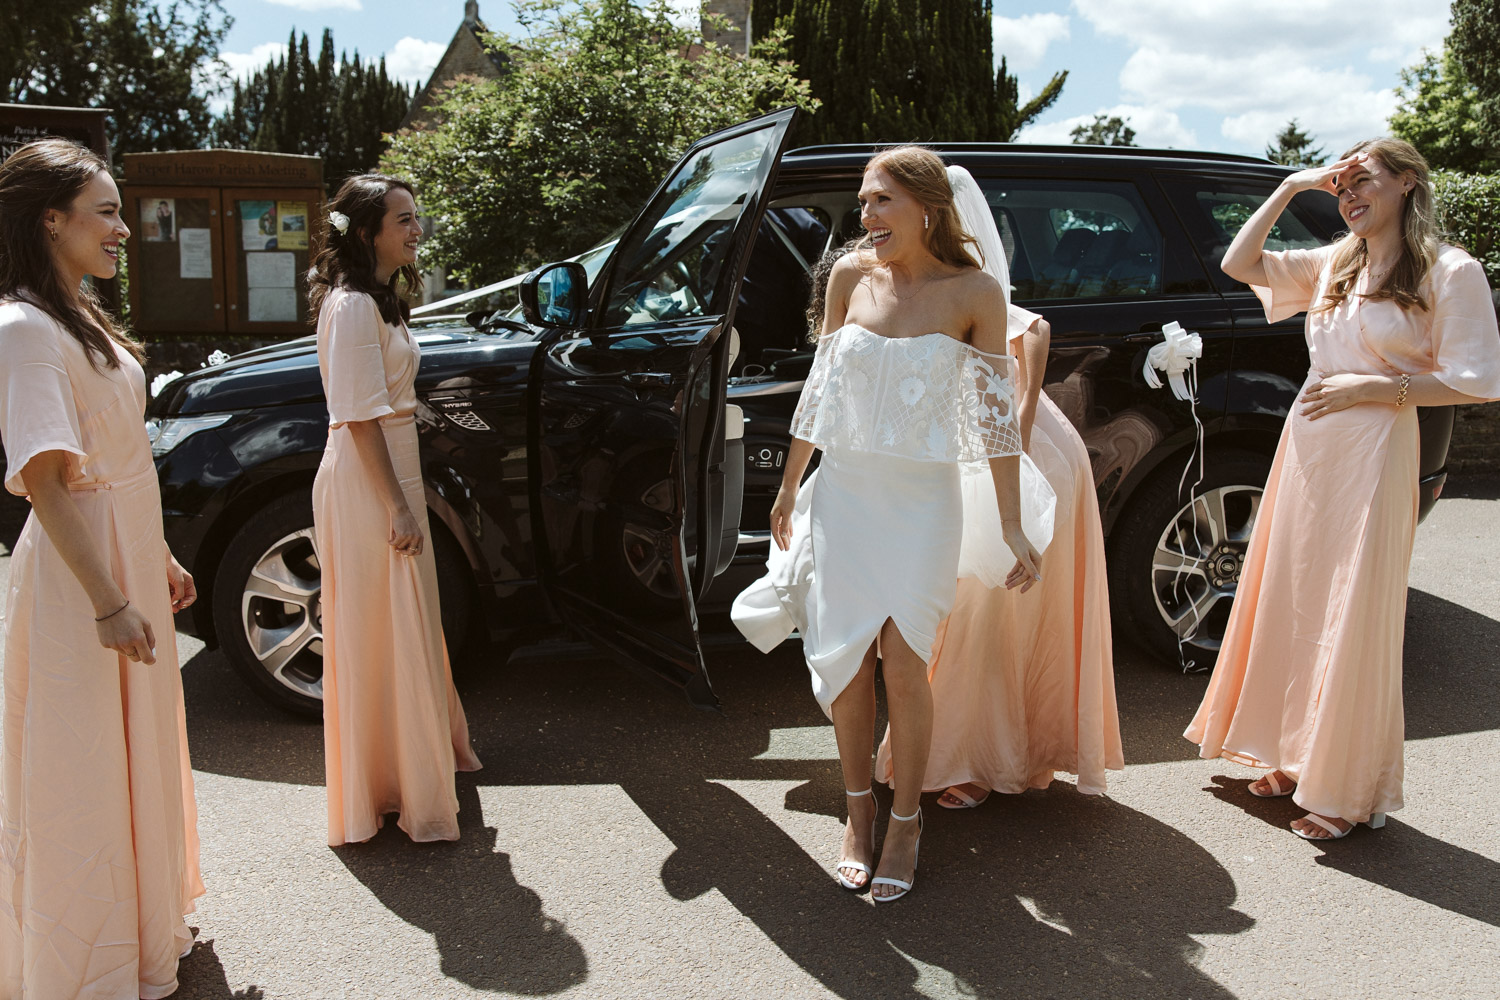 the bride and bridesmaids arriving at the church in beautiful sunlight, the bride is beaming with happiness